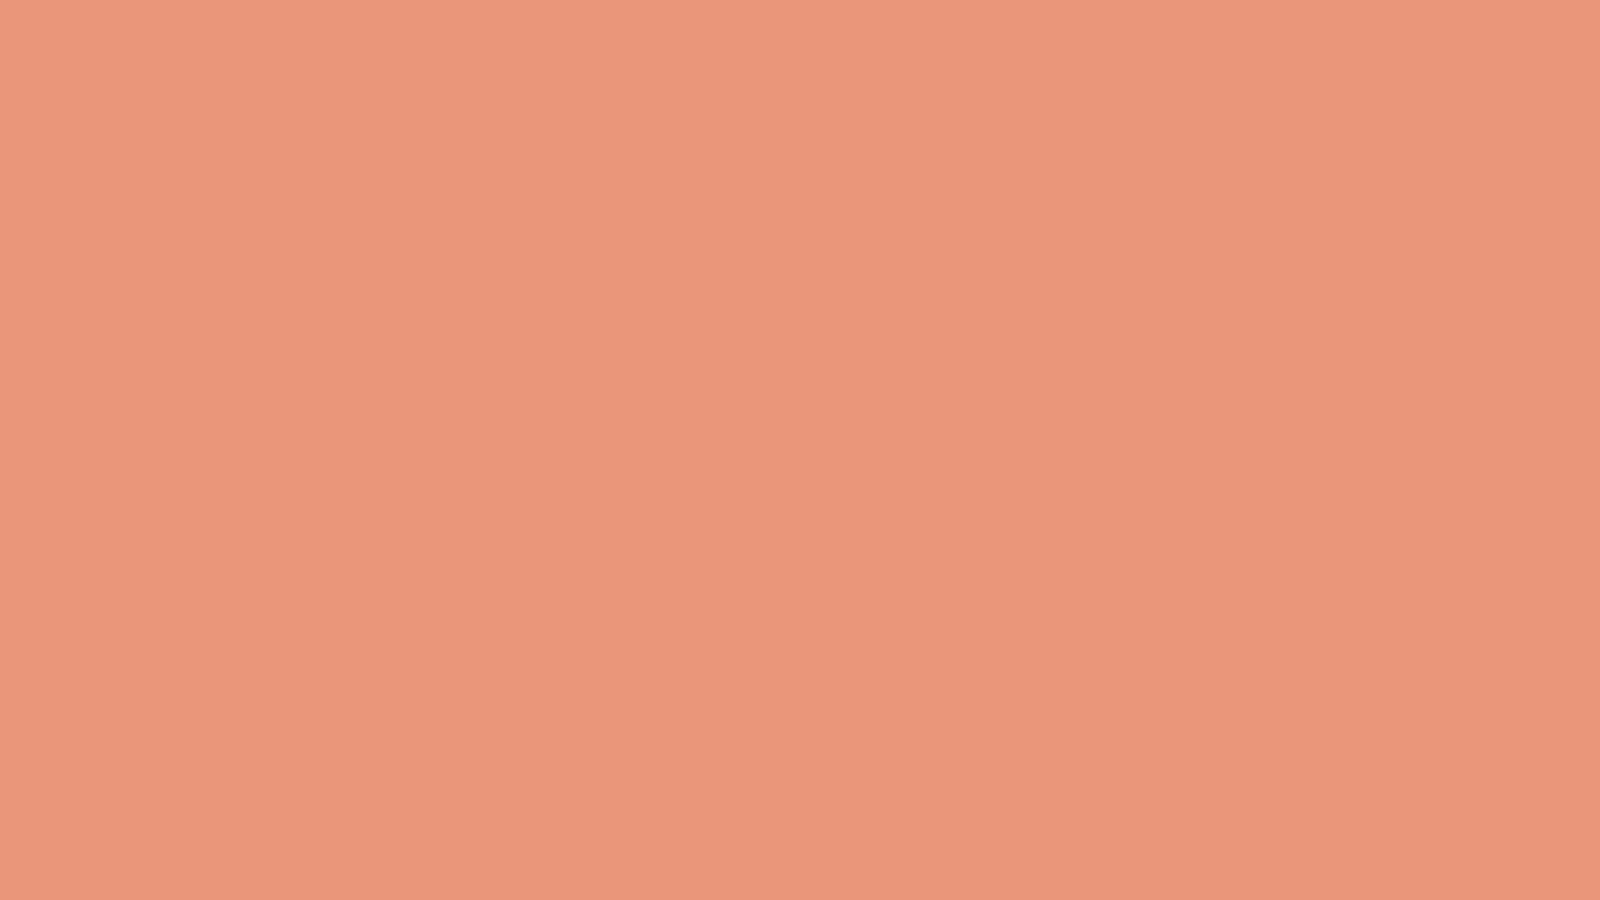 1600x900 Dark Salmon Solid Color Background